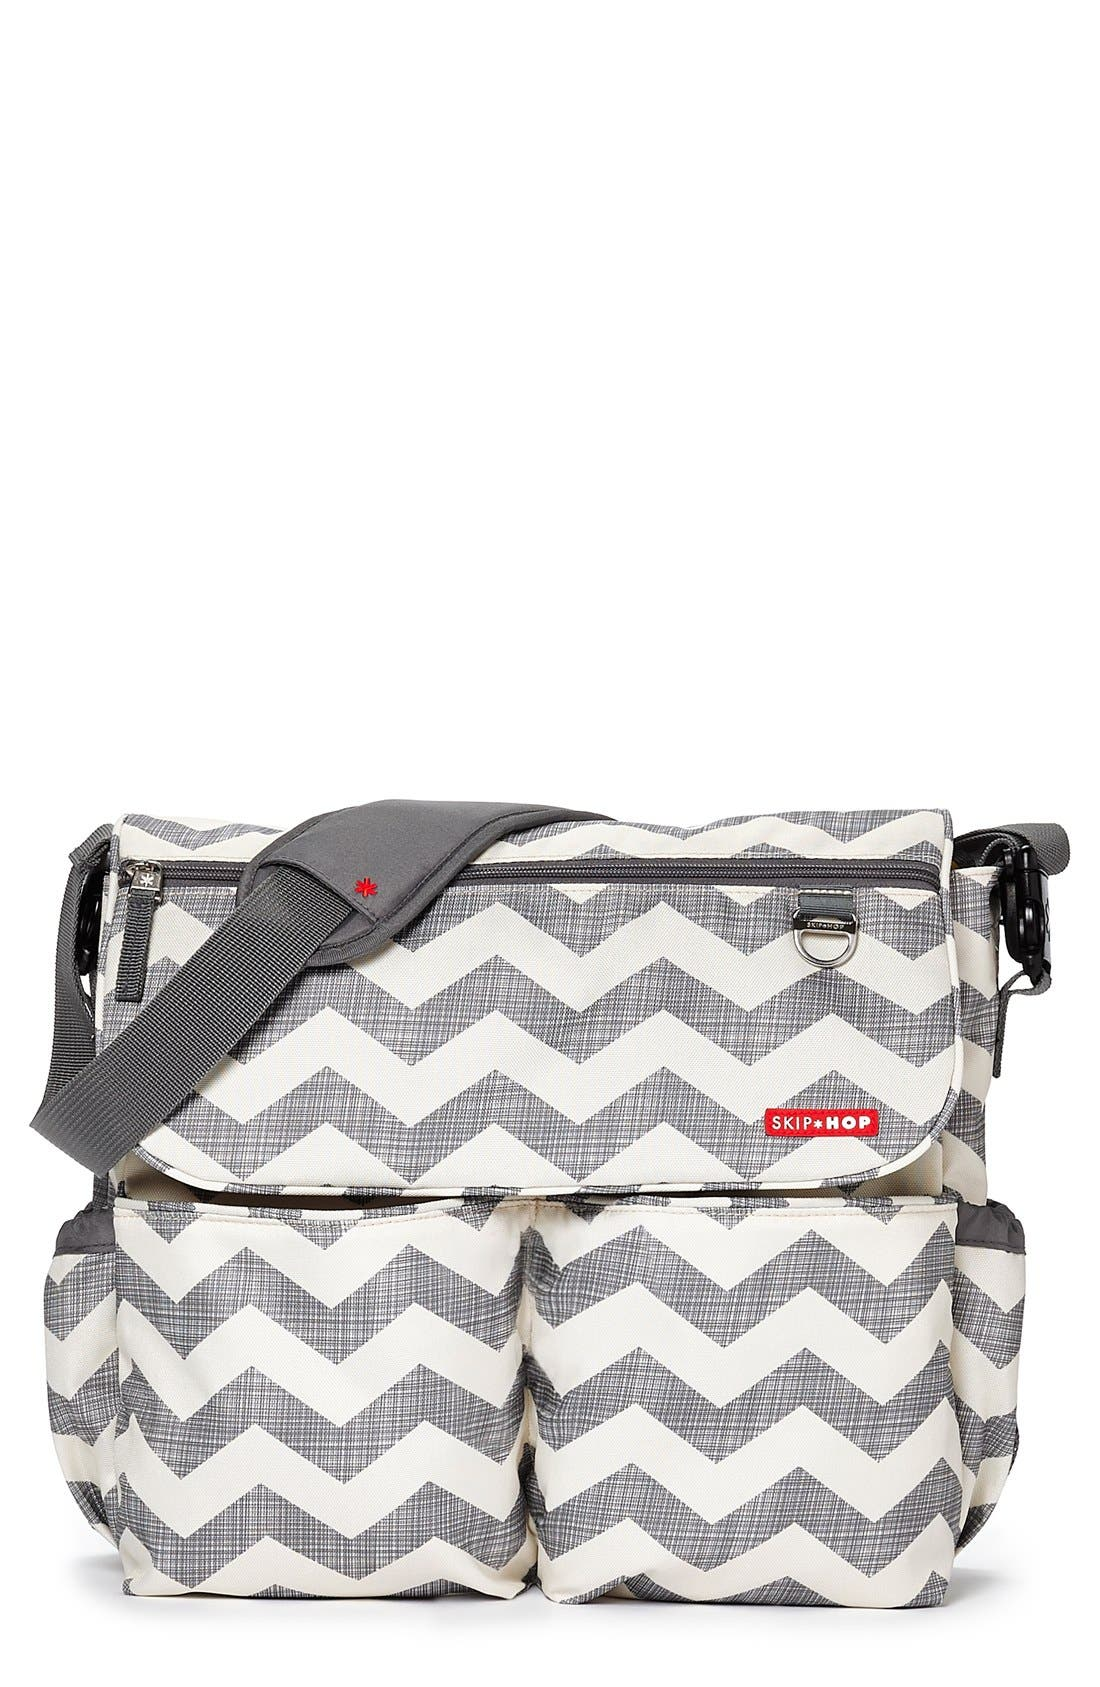 'Dash Signature' Messenger Diaper Bag,                         Main,                         color, 020